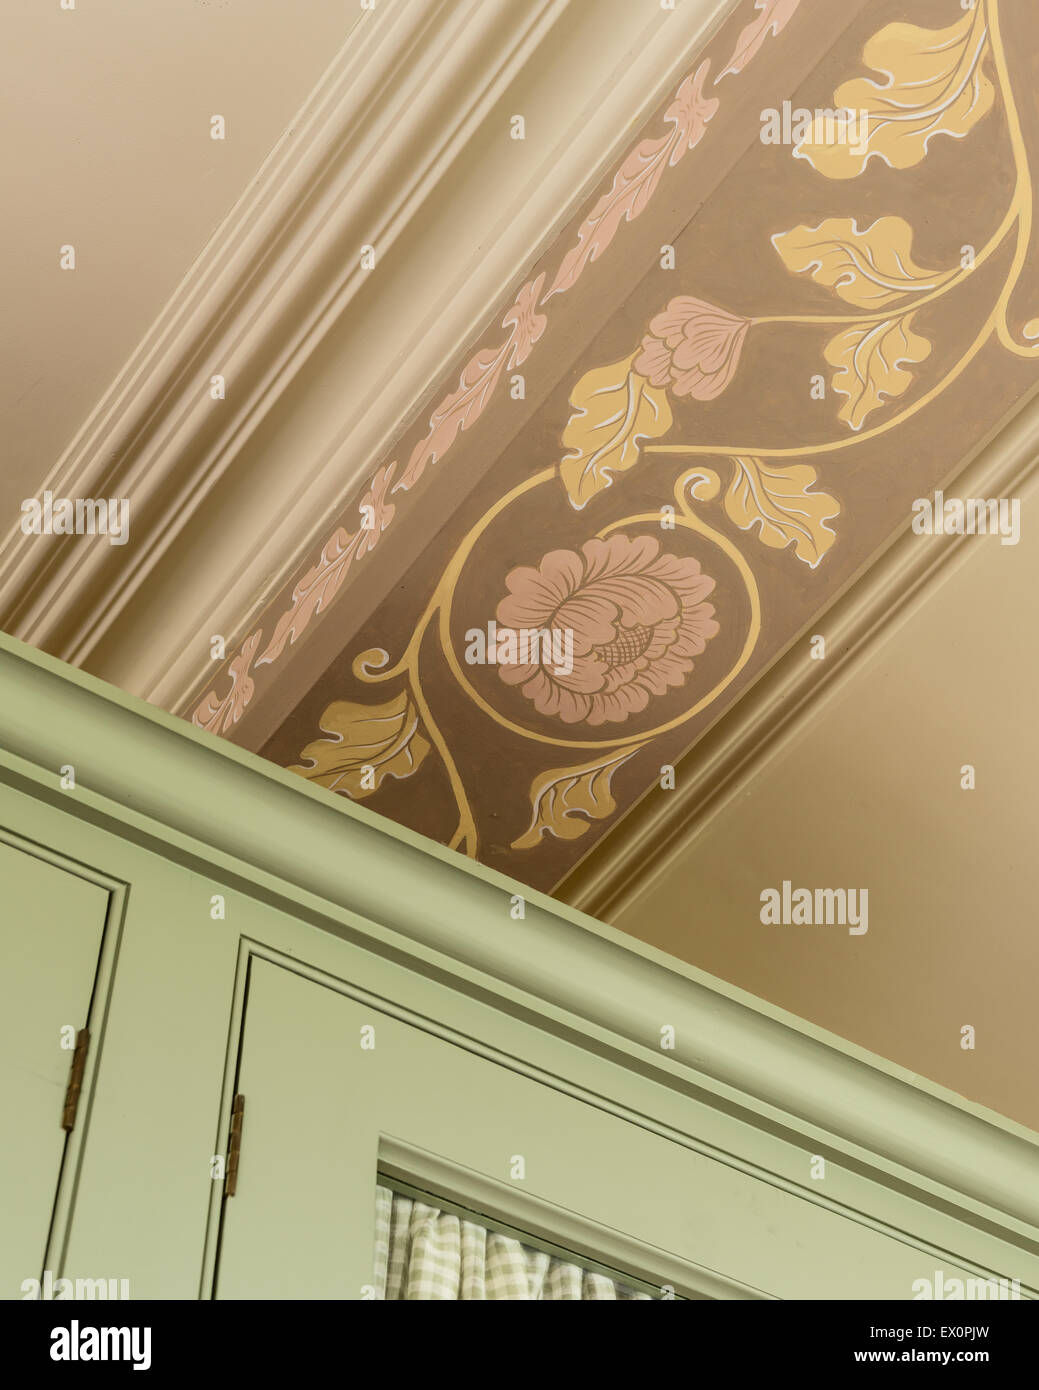 Detail of ceiling painting above cupboard - Stock Image